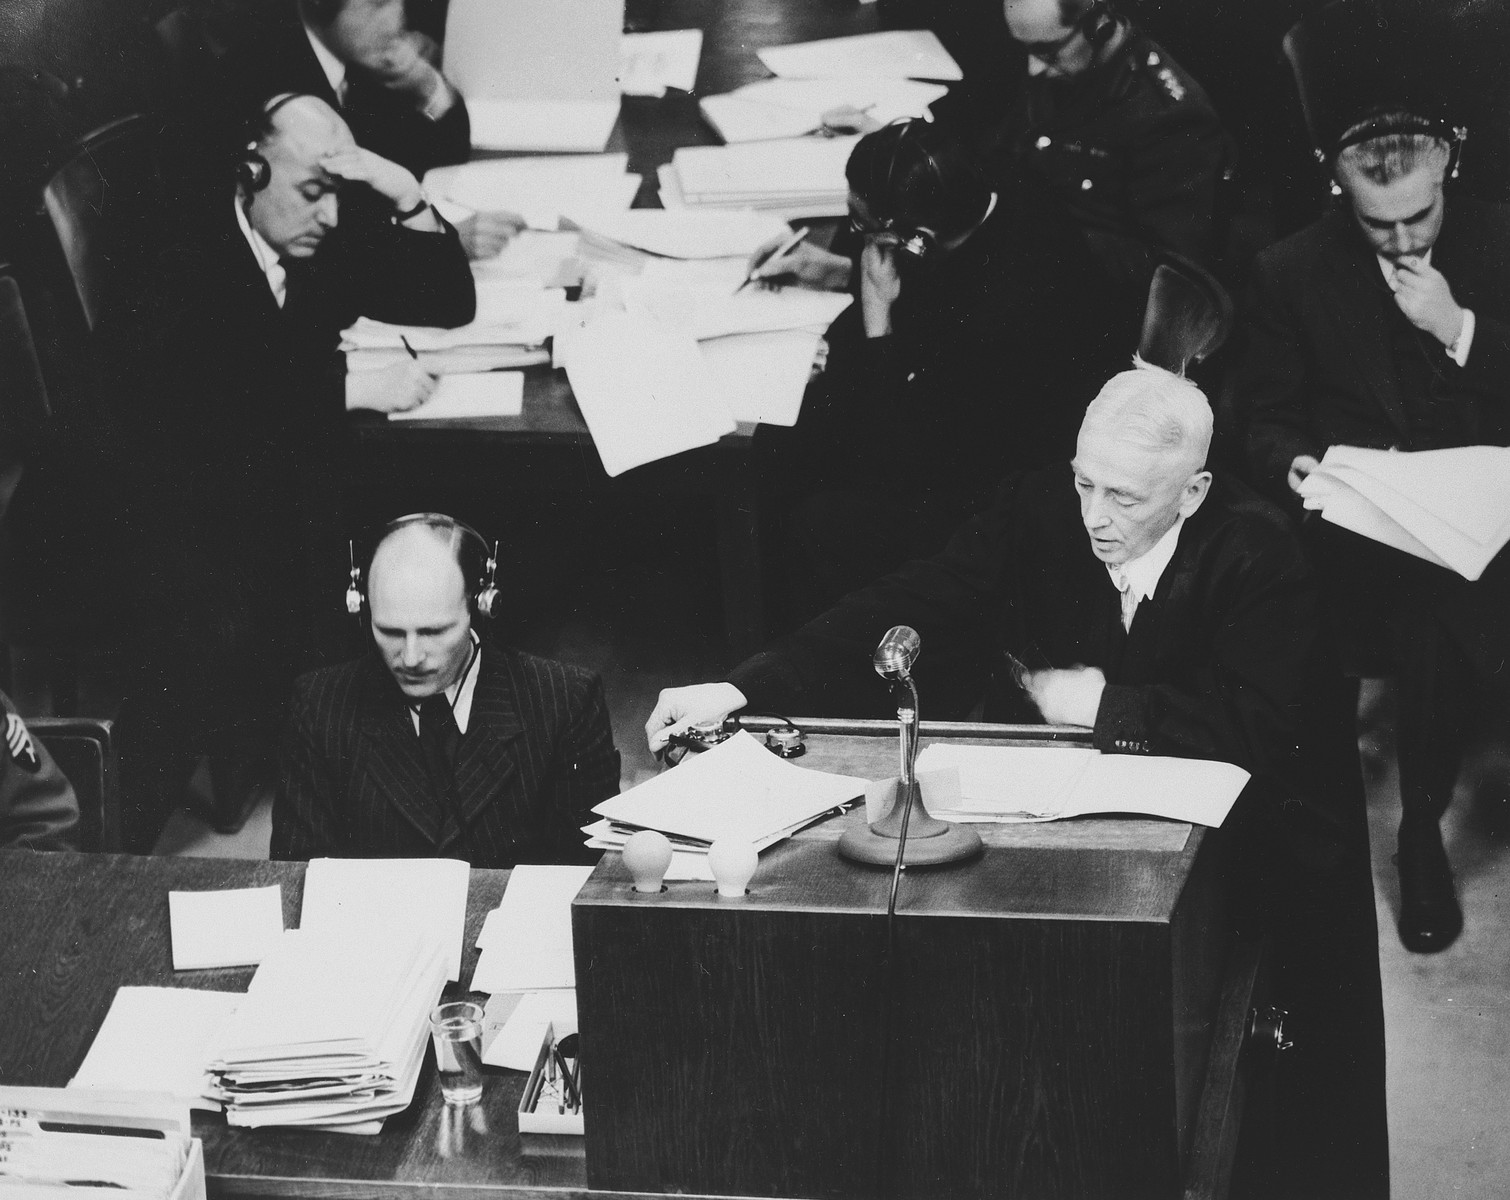 One of the prosecutors speaks at a session of the International Military Tribunal in Nuremberg.